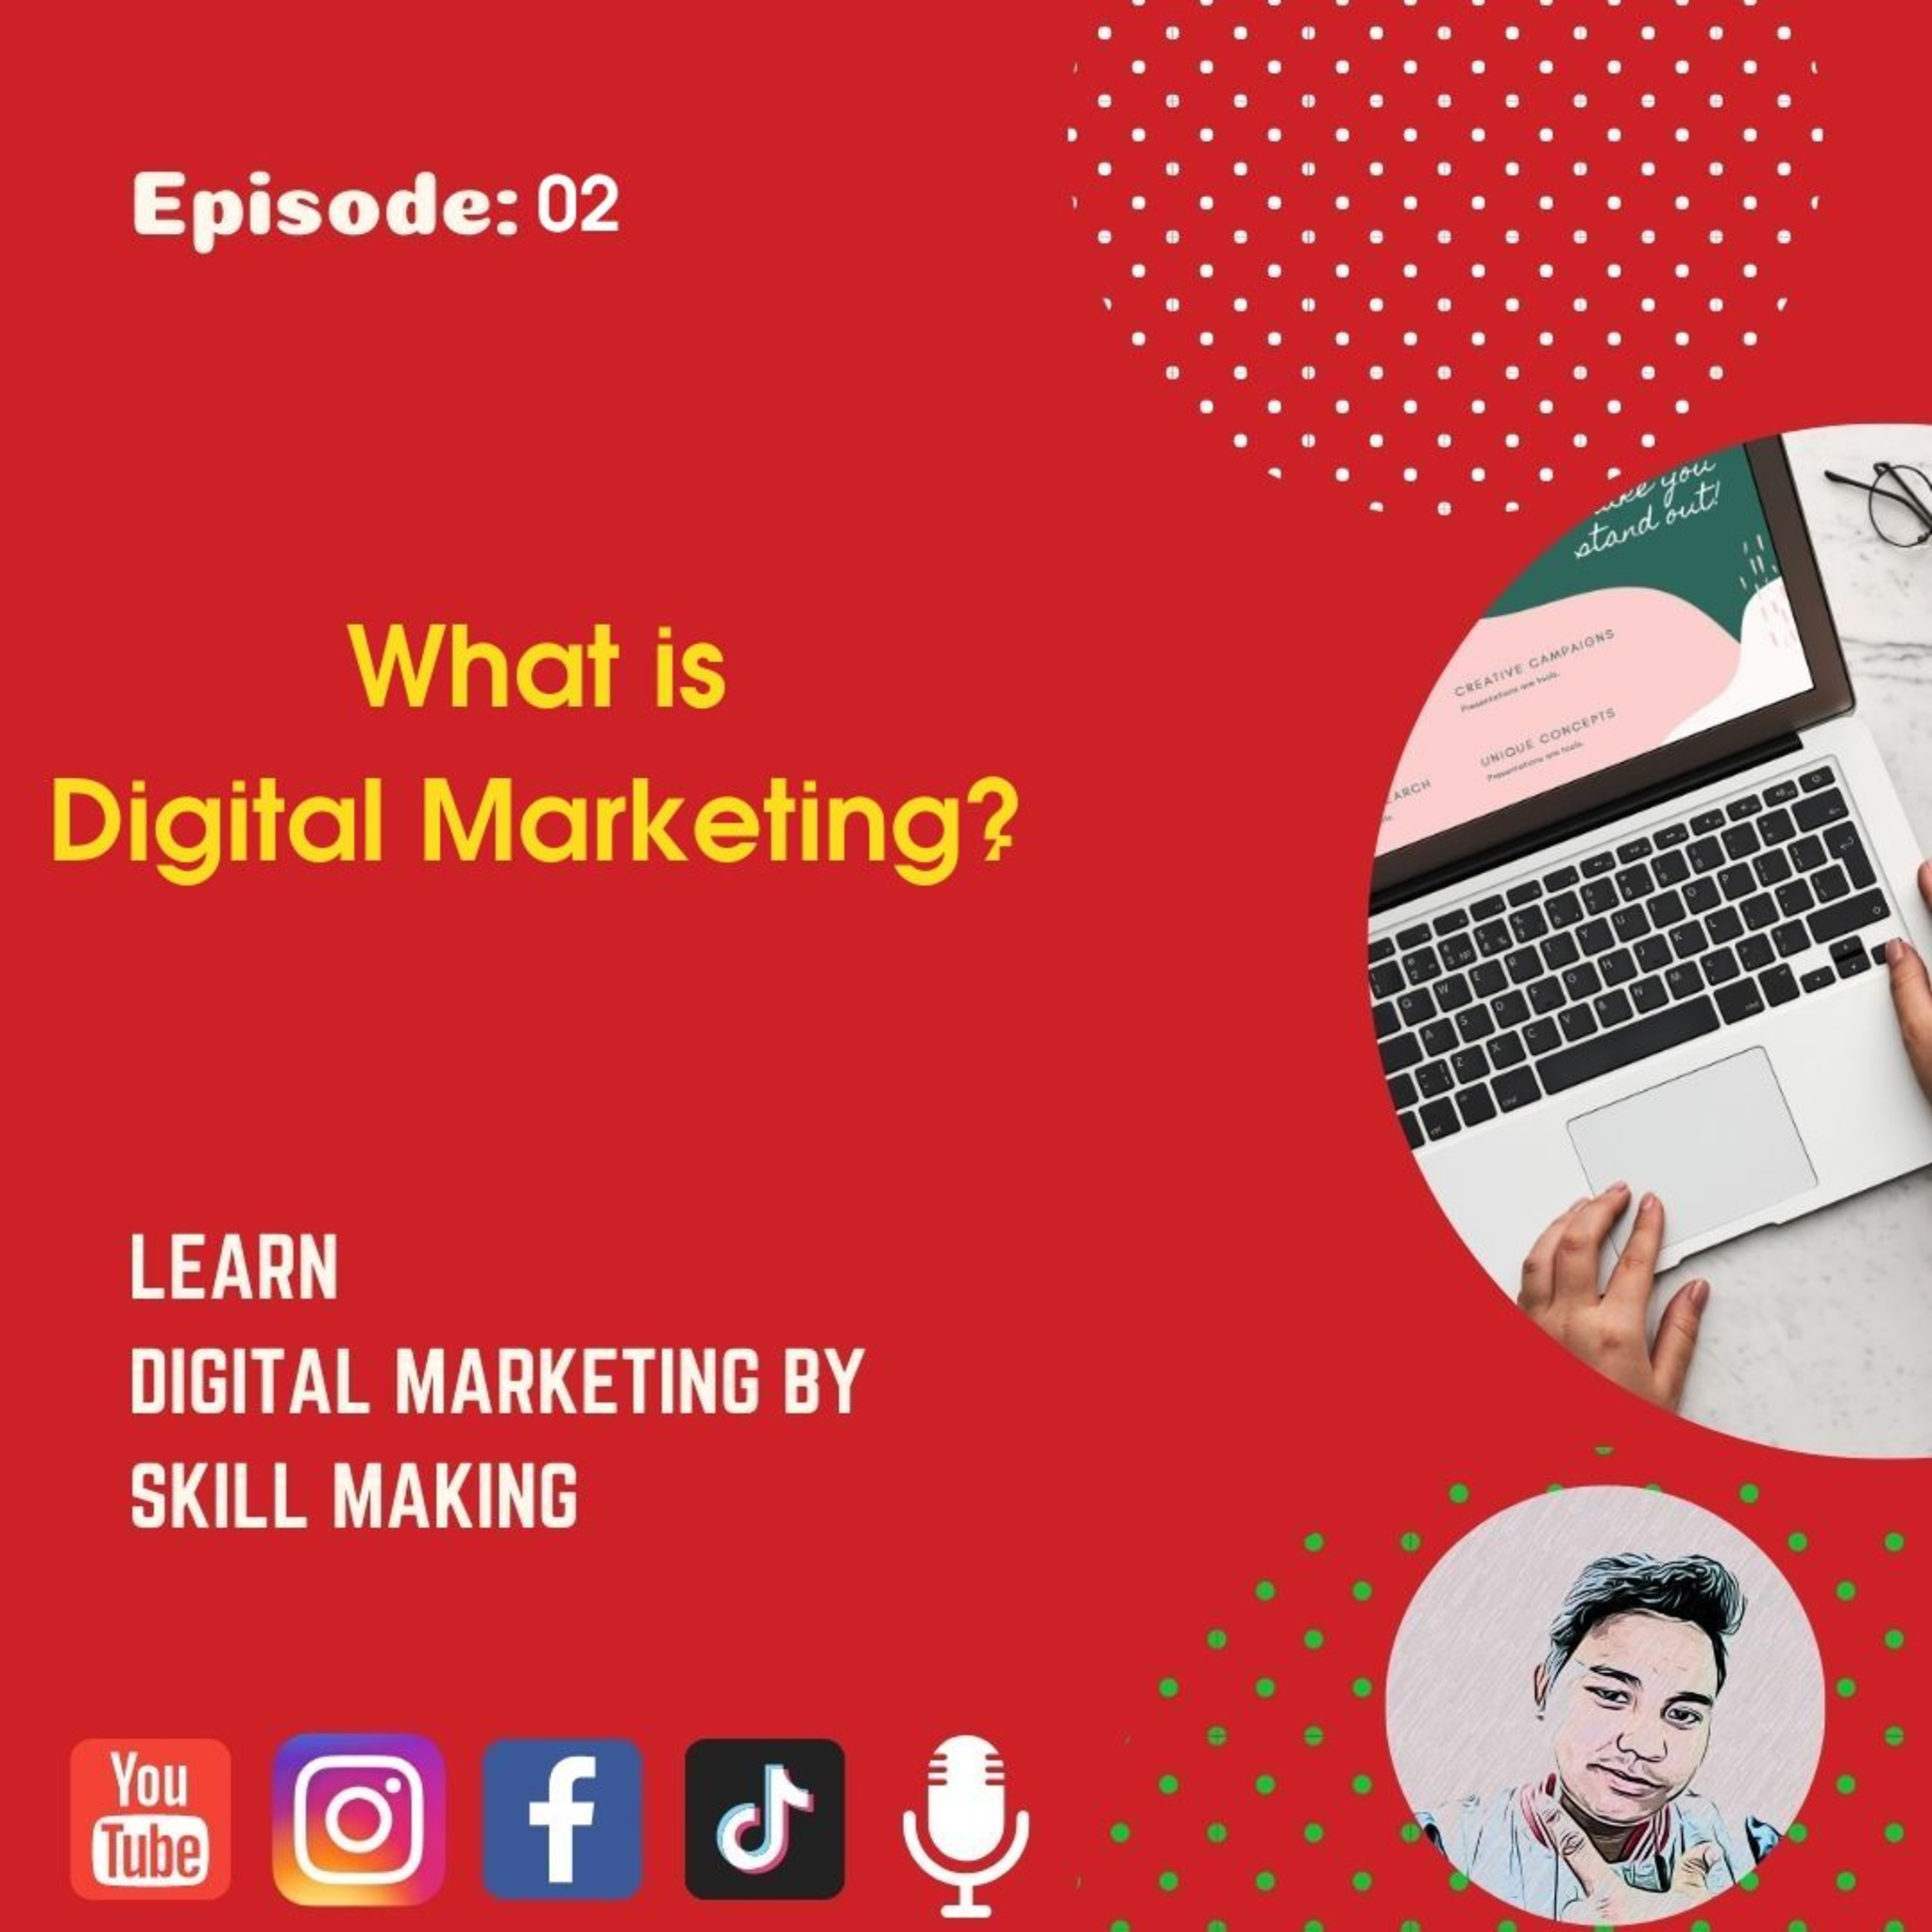 Learn About What is Digital Marketing?